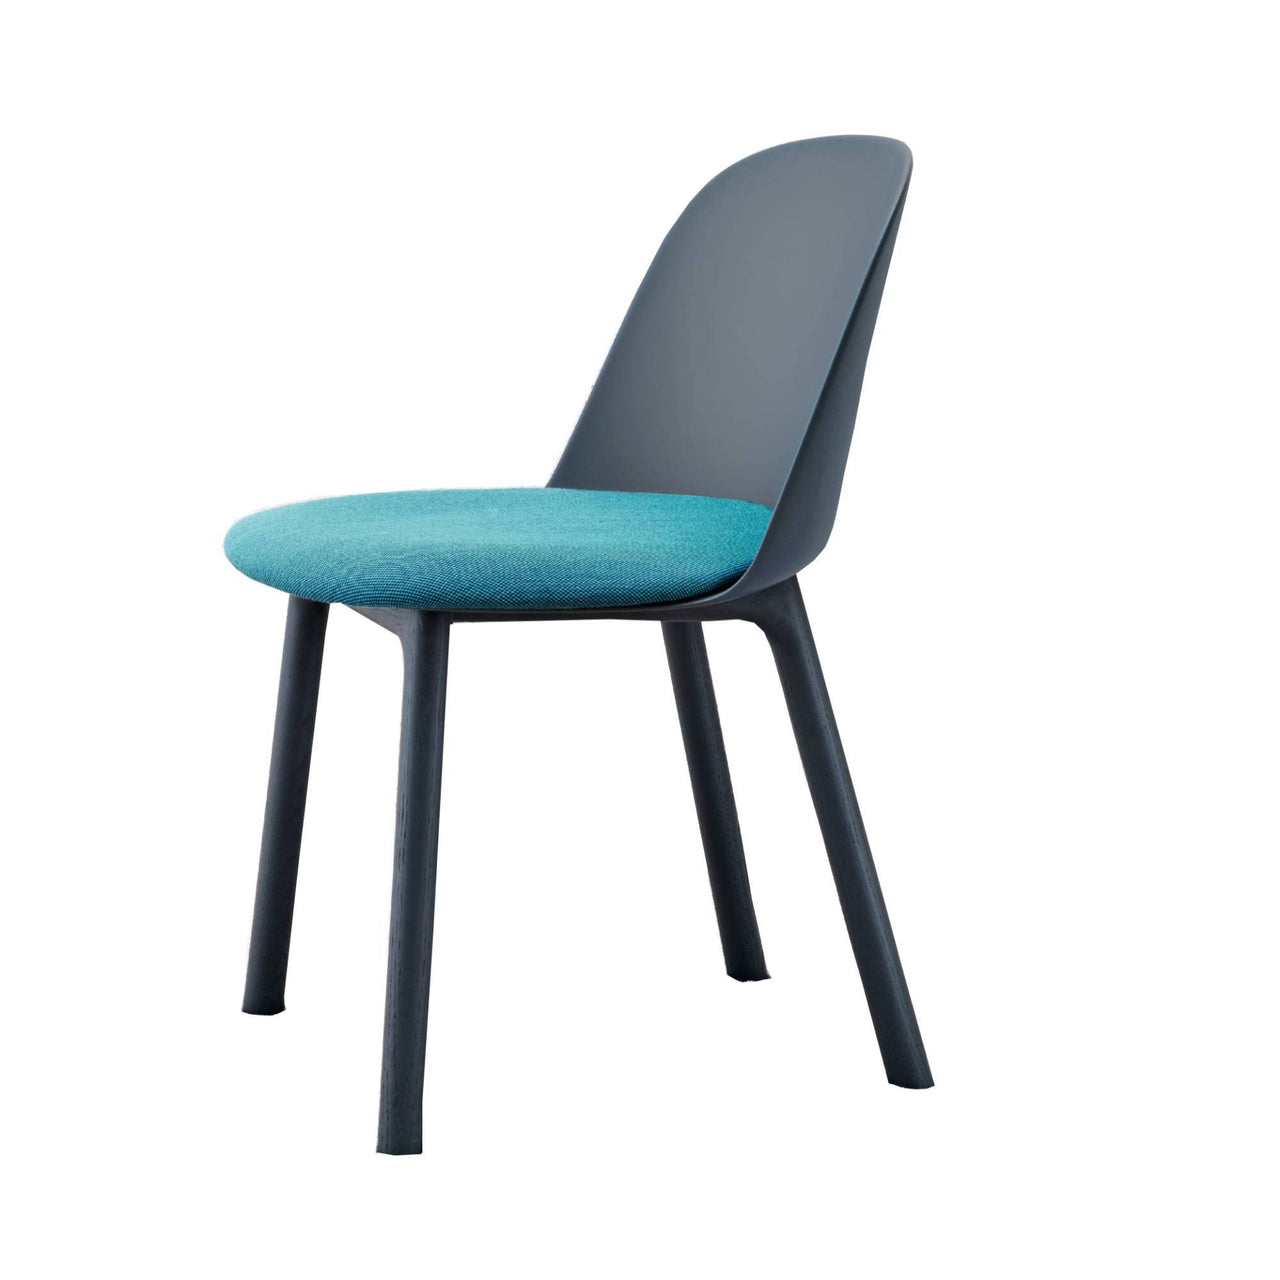 Mariolina Side Chair: Wood Base + Upholstery + Intense Blue Shell